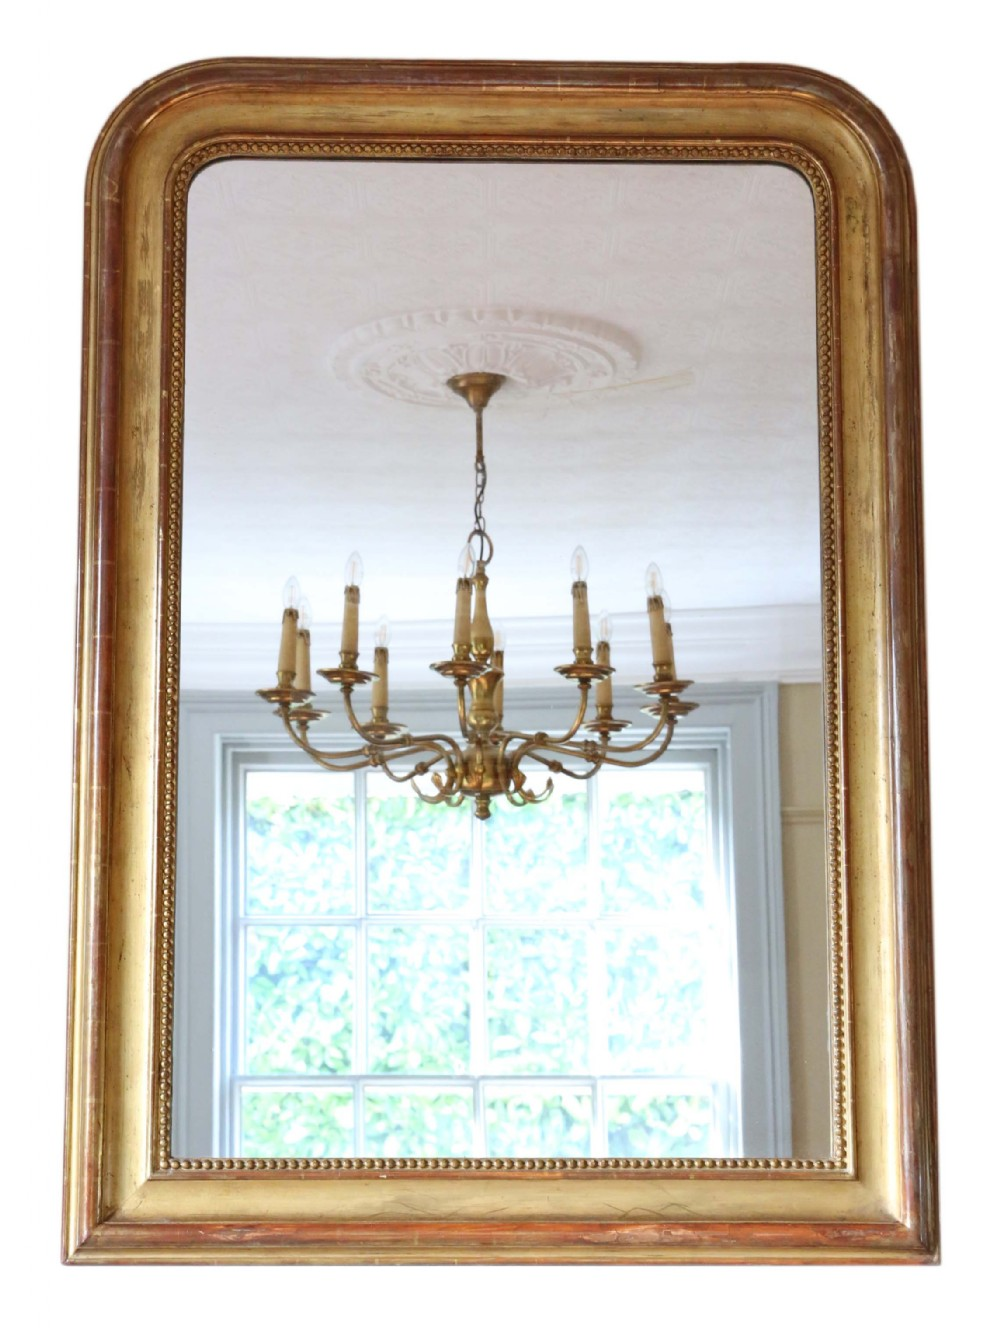 19th century large gilt overmantle or wall mirror